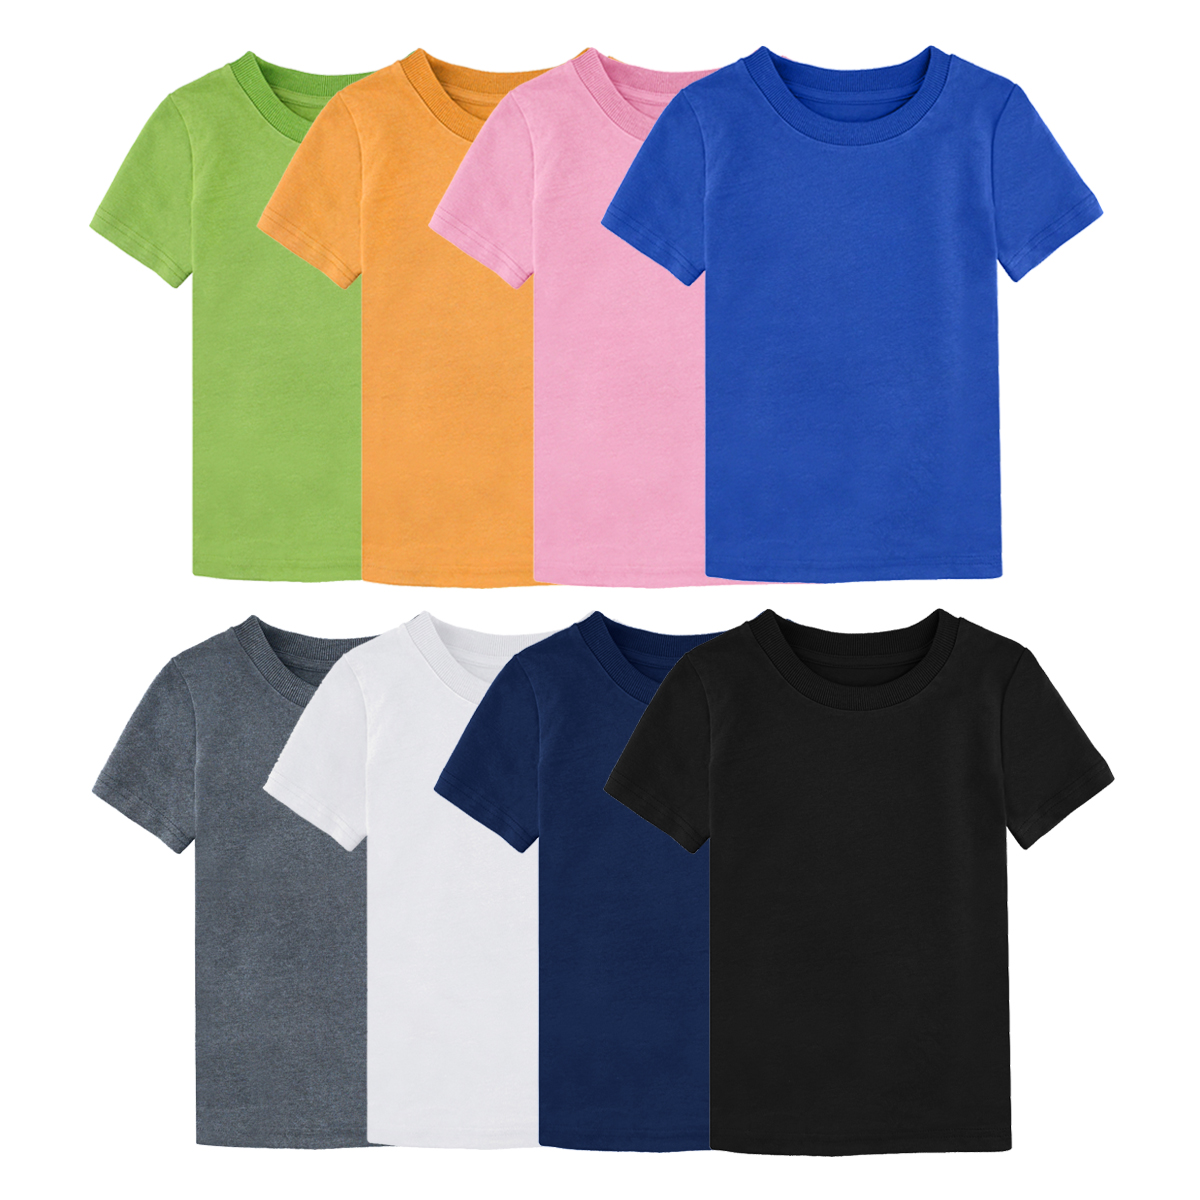 Little Boys Girls Solid Color Short Sleeve Shirts T-Shirts